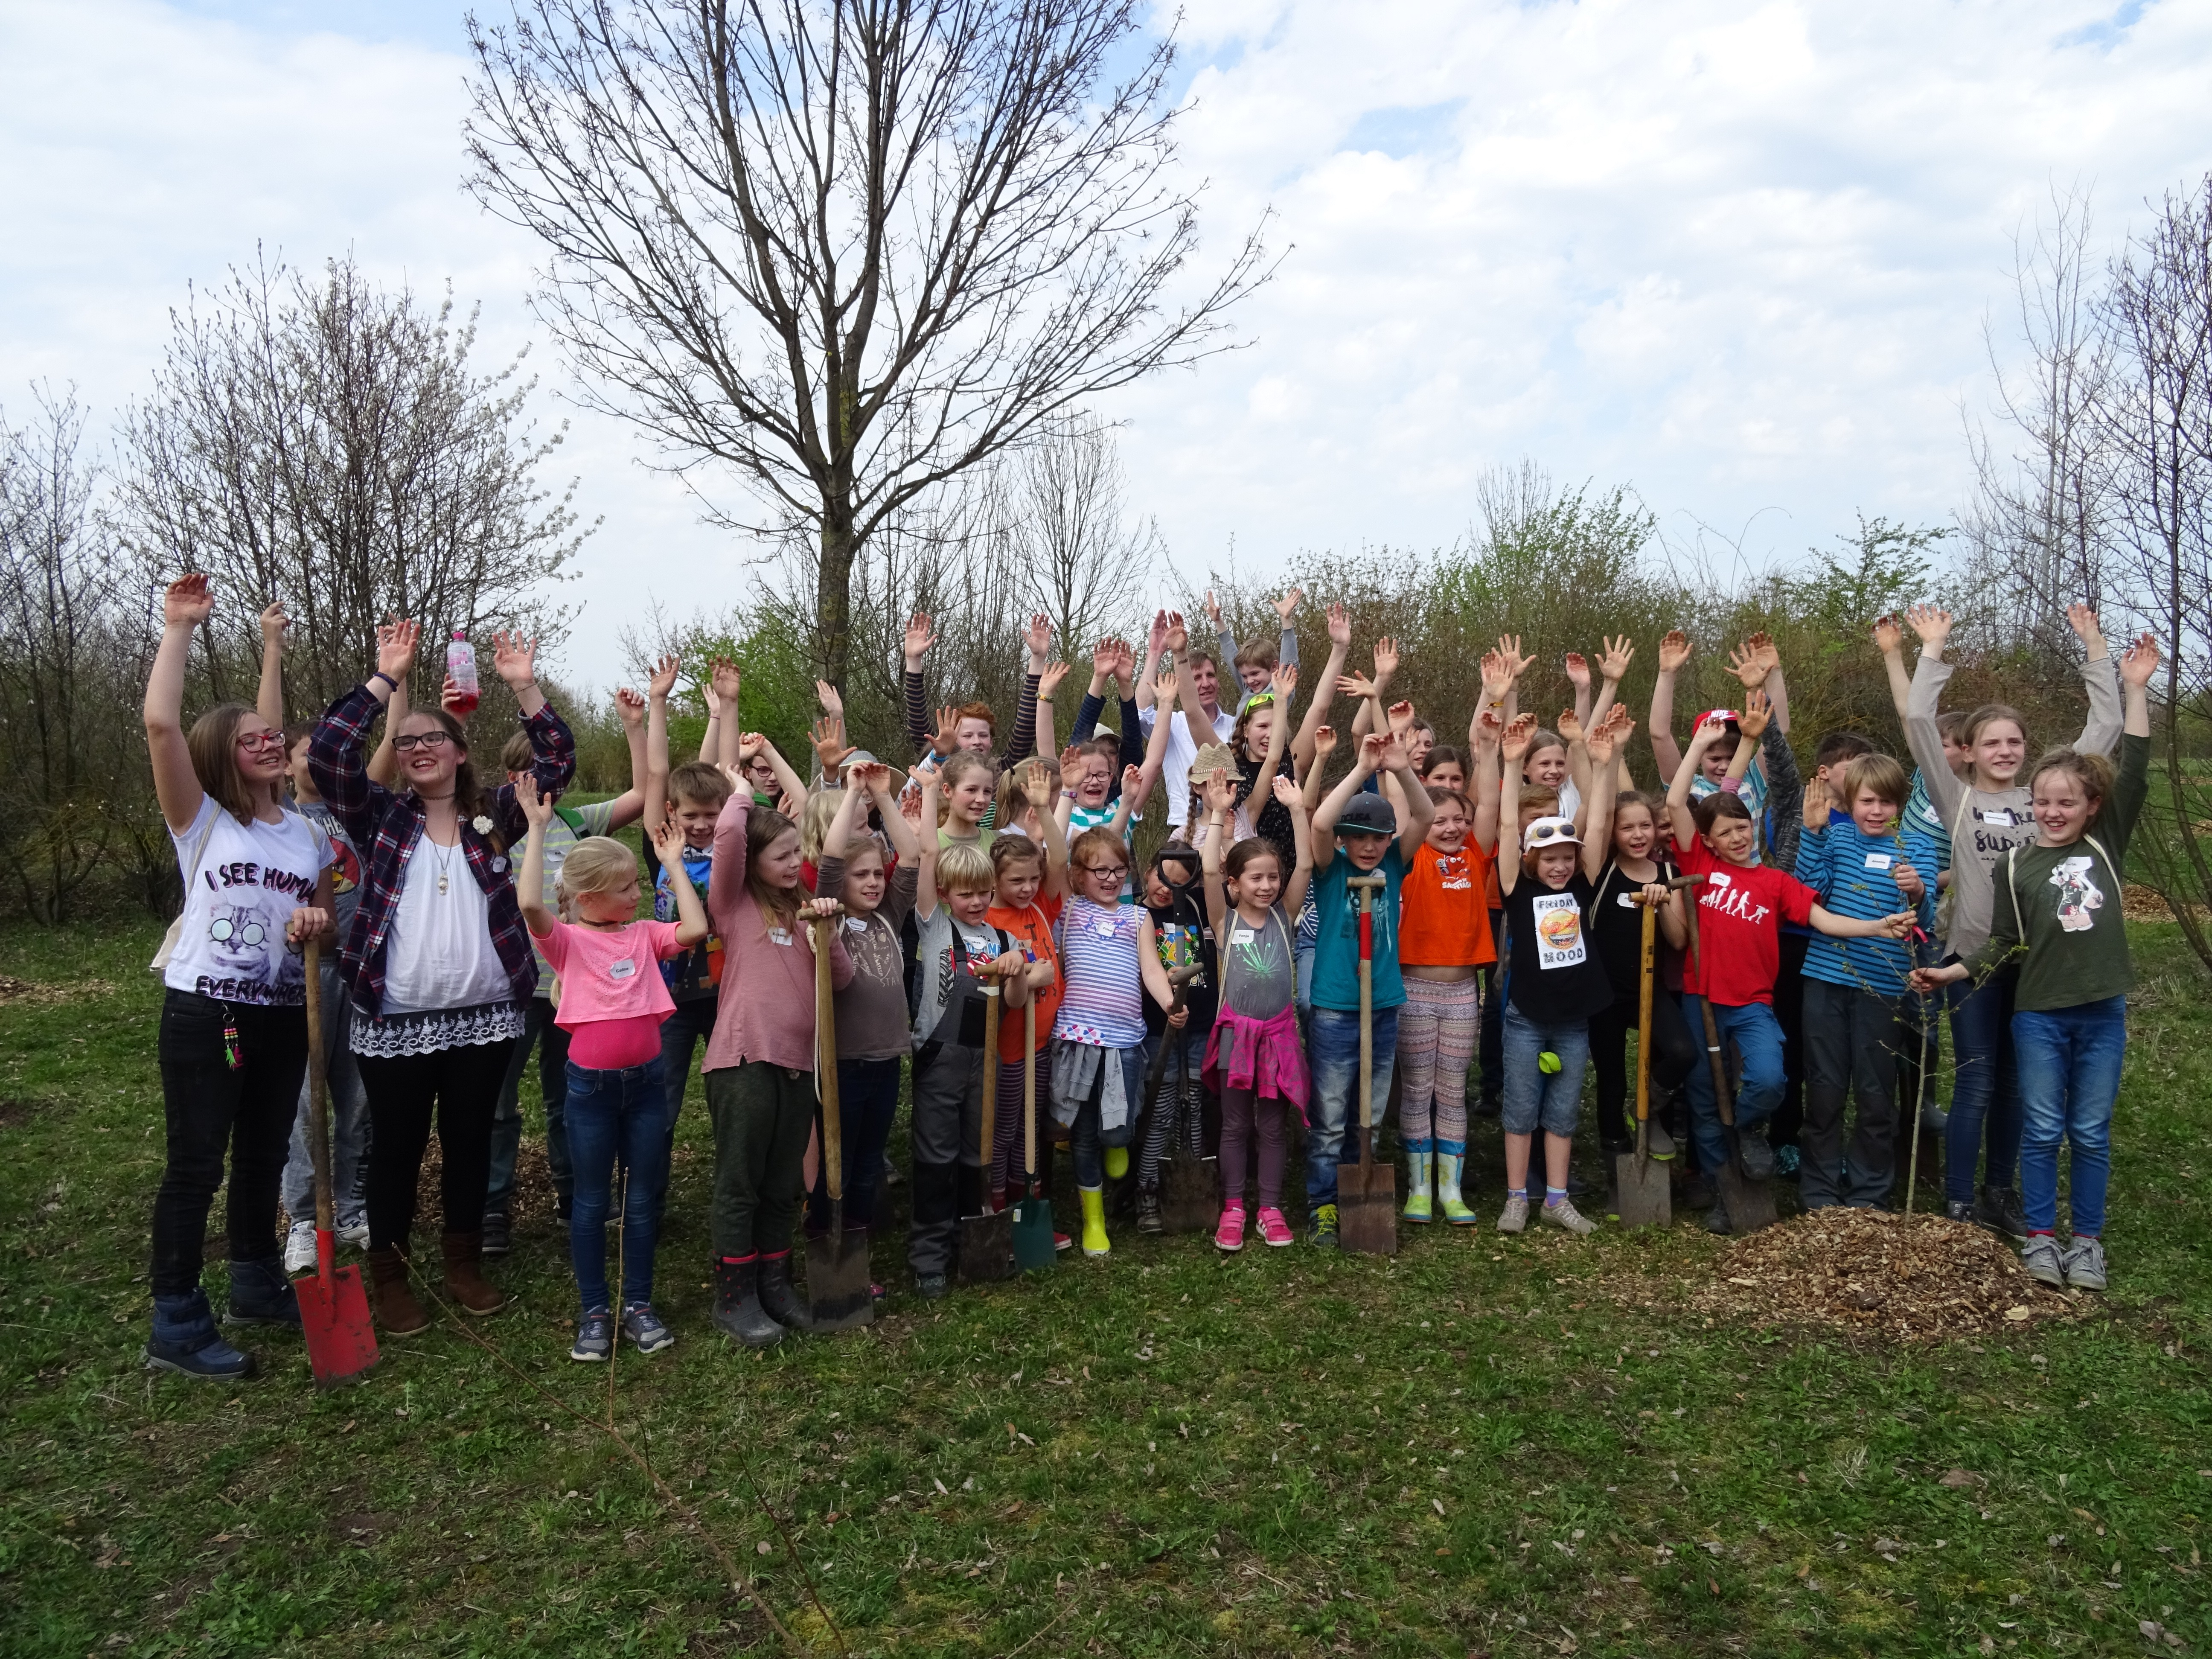 On Saturday 50 children planted trees for the environment in Erfurt